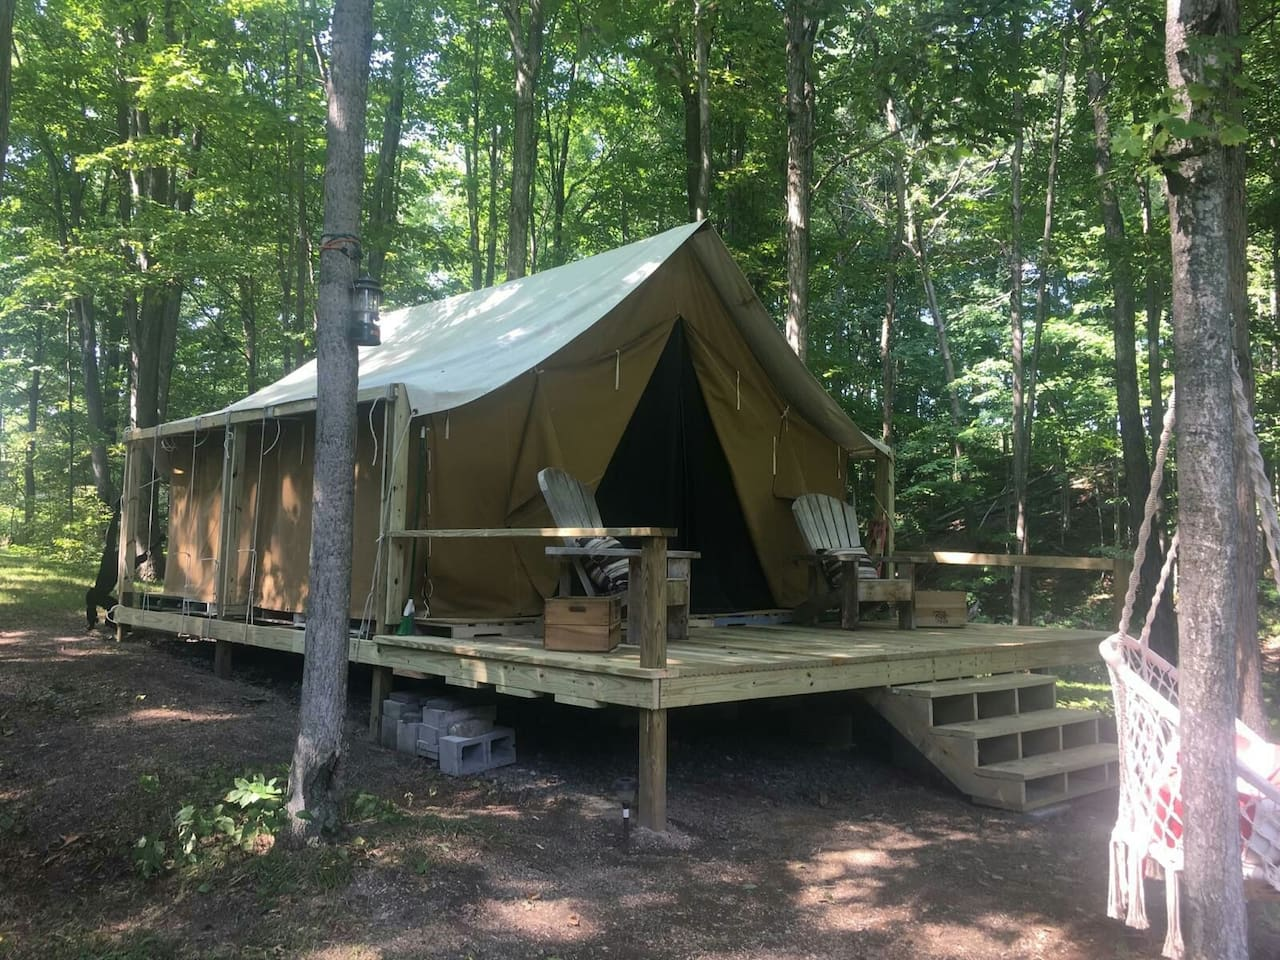 This is a 16 x 16 foot tent outfitted with a comfortable, well dressed queen size bed tucked just inside the woods with the front porch facing the pond.